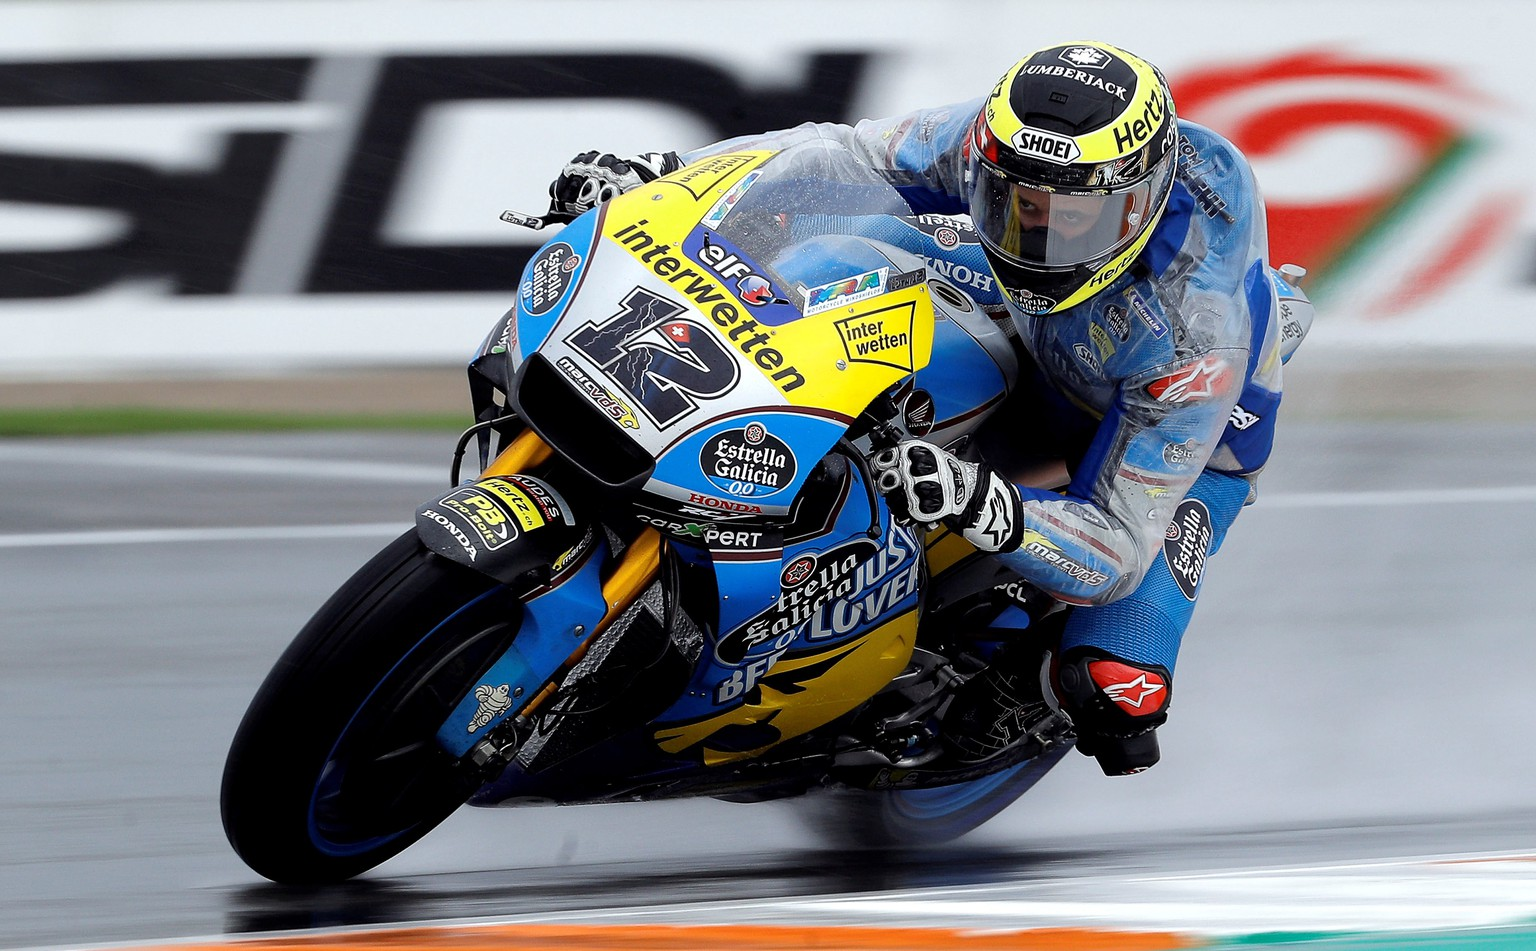 epa07170467 Swiss Moto GP rider Thomas Luthi of EG 0,0 Marc VDS Honda team in action during the practice session of the Comunitat Valenciana Motorcycling Grand Prix at Ricardo Tormo Circuit, in Cheste, eastern Spain, 16 November 2018. The Comunitat Valenciana Grand Prix will be held on 18 November 2018.  EPA/MANUEL BRUQUE